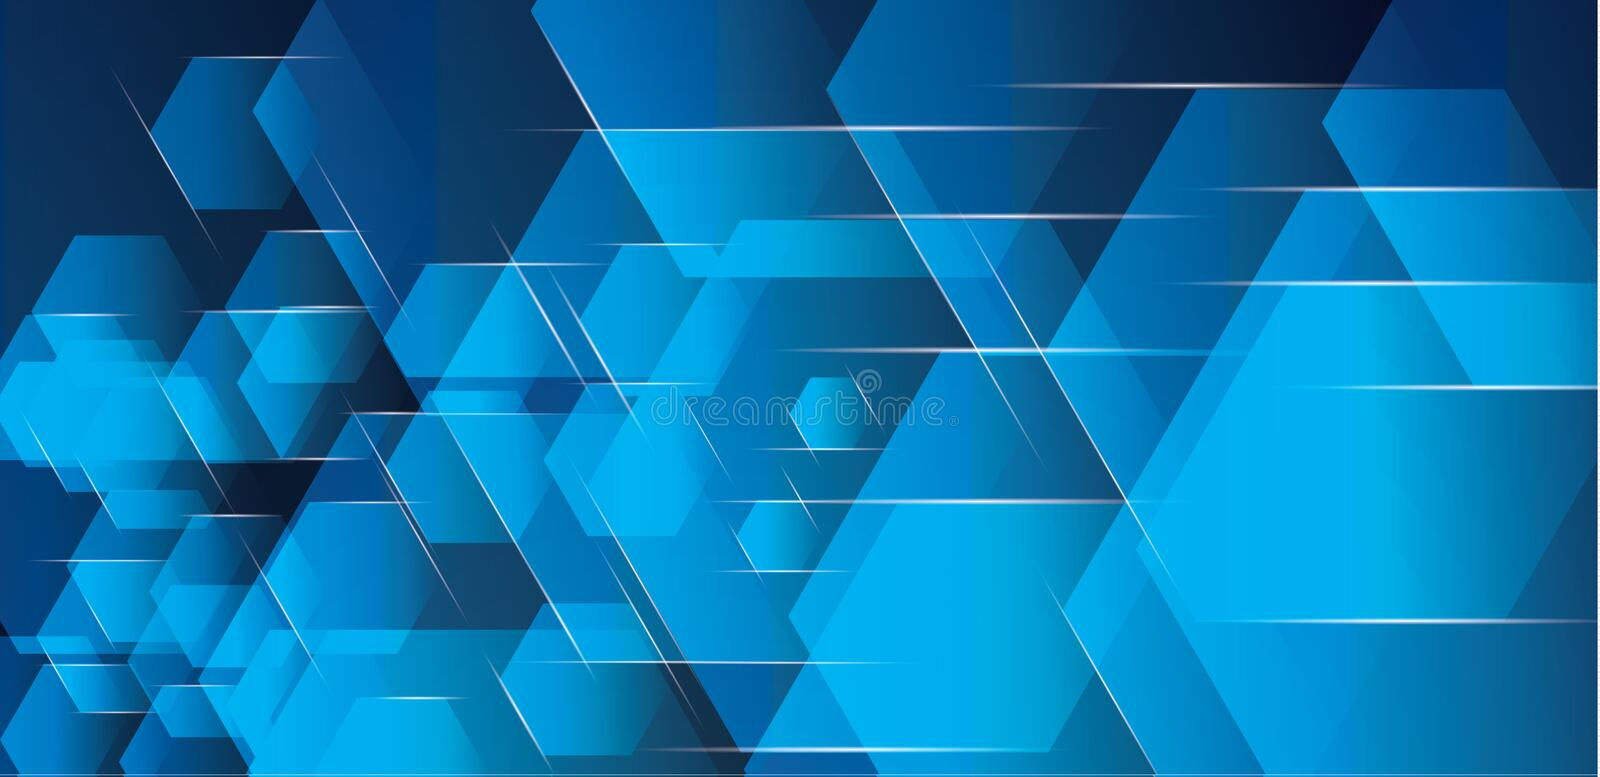 Abstract polygonal space low poly dark background with connecting dots and lines. Connection structure. Fiber vector illustration